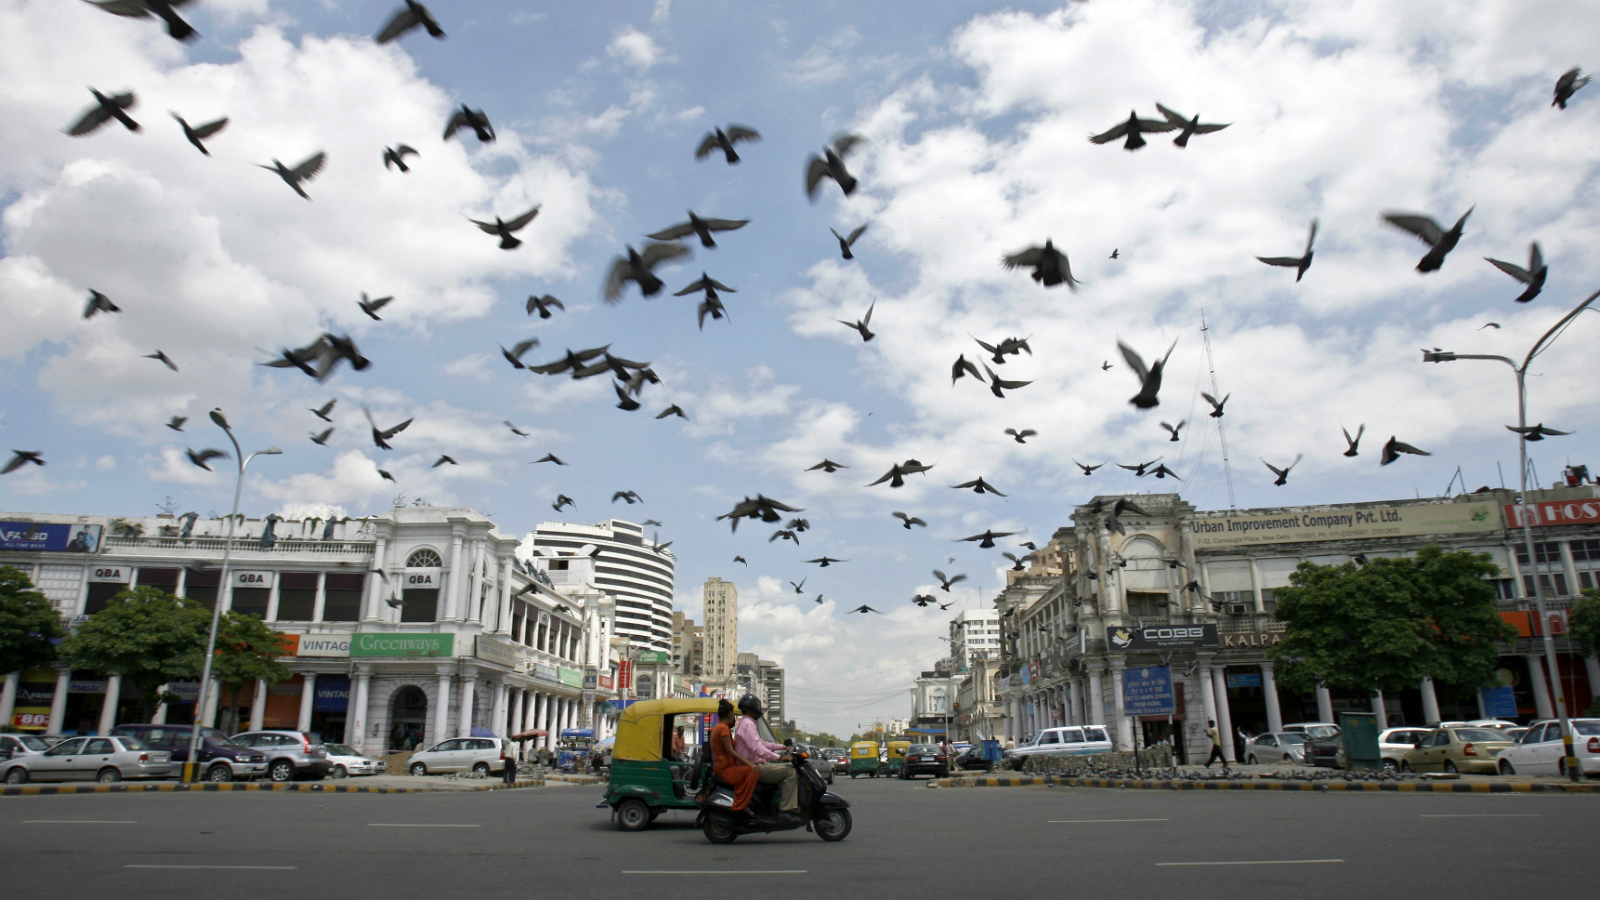 Pigeons fly as clouds gather over New Delhi's Connaught Place July 16, 2009. India's monsoon rains were six percent above normal in the week to July 15, rebounding after a prolonged weak patch, the weather office said on Thursday.